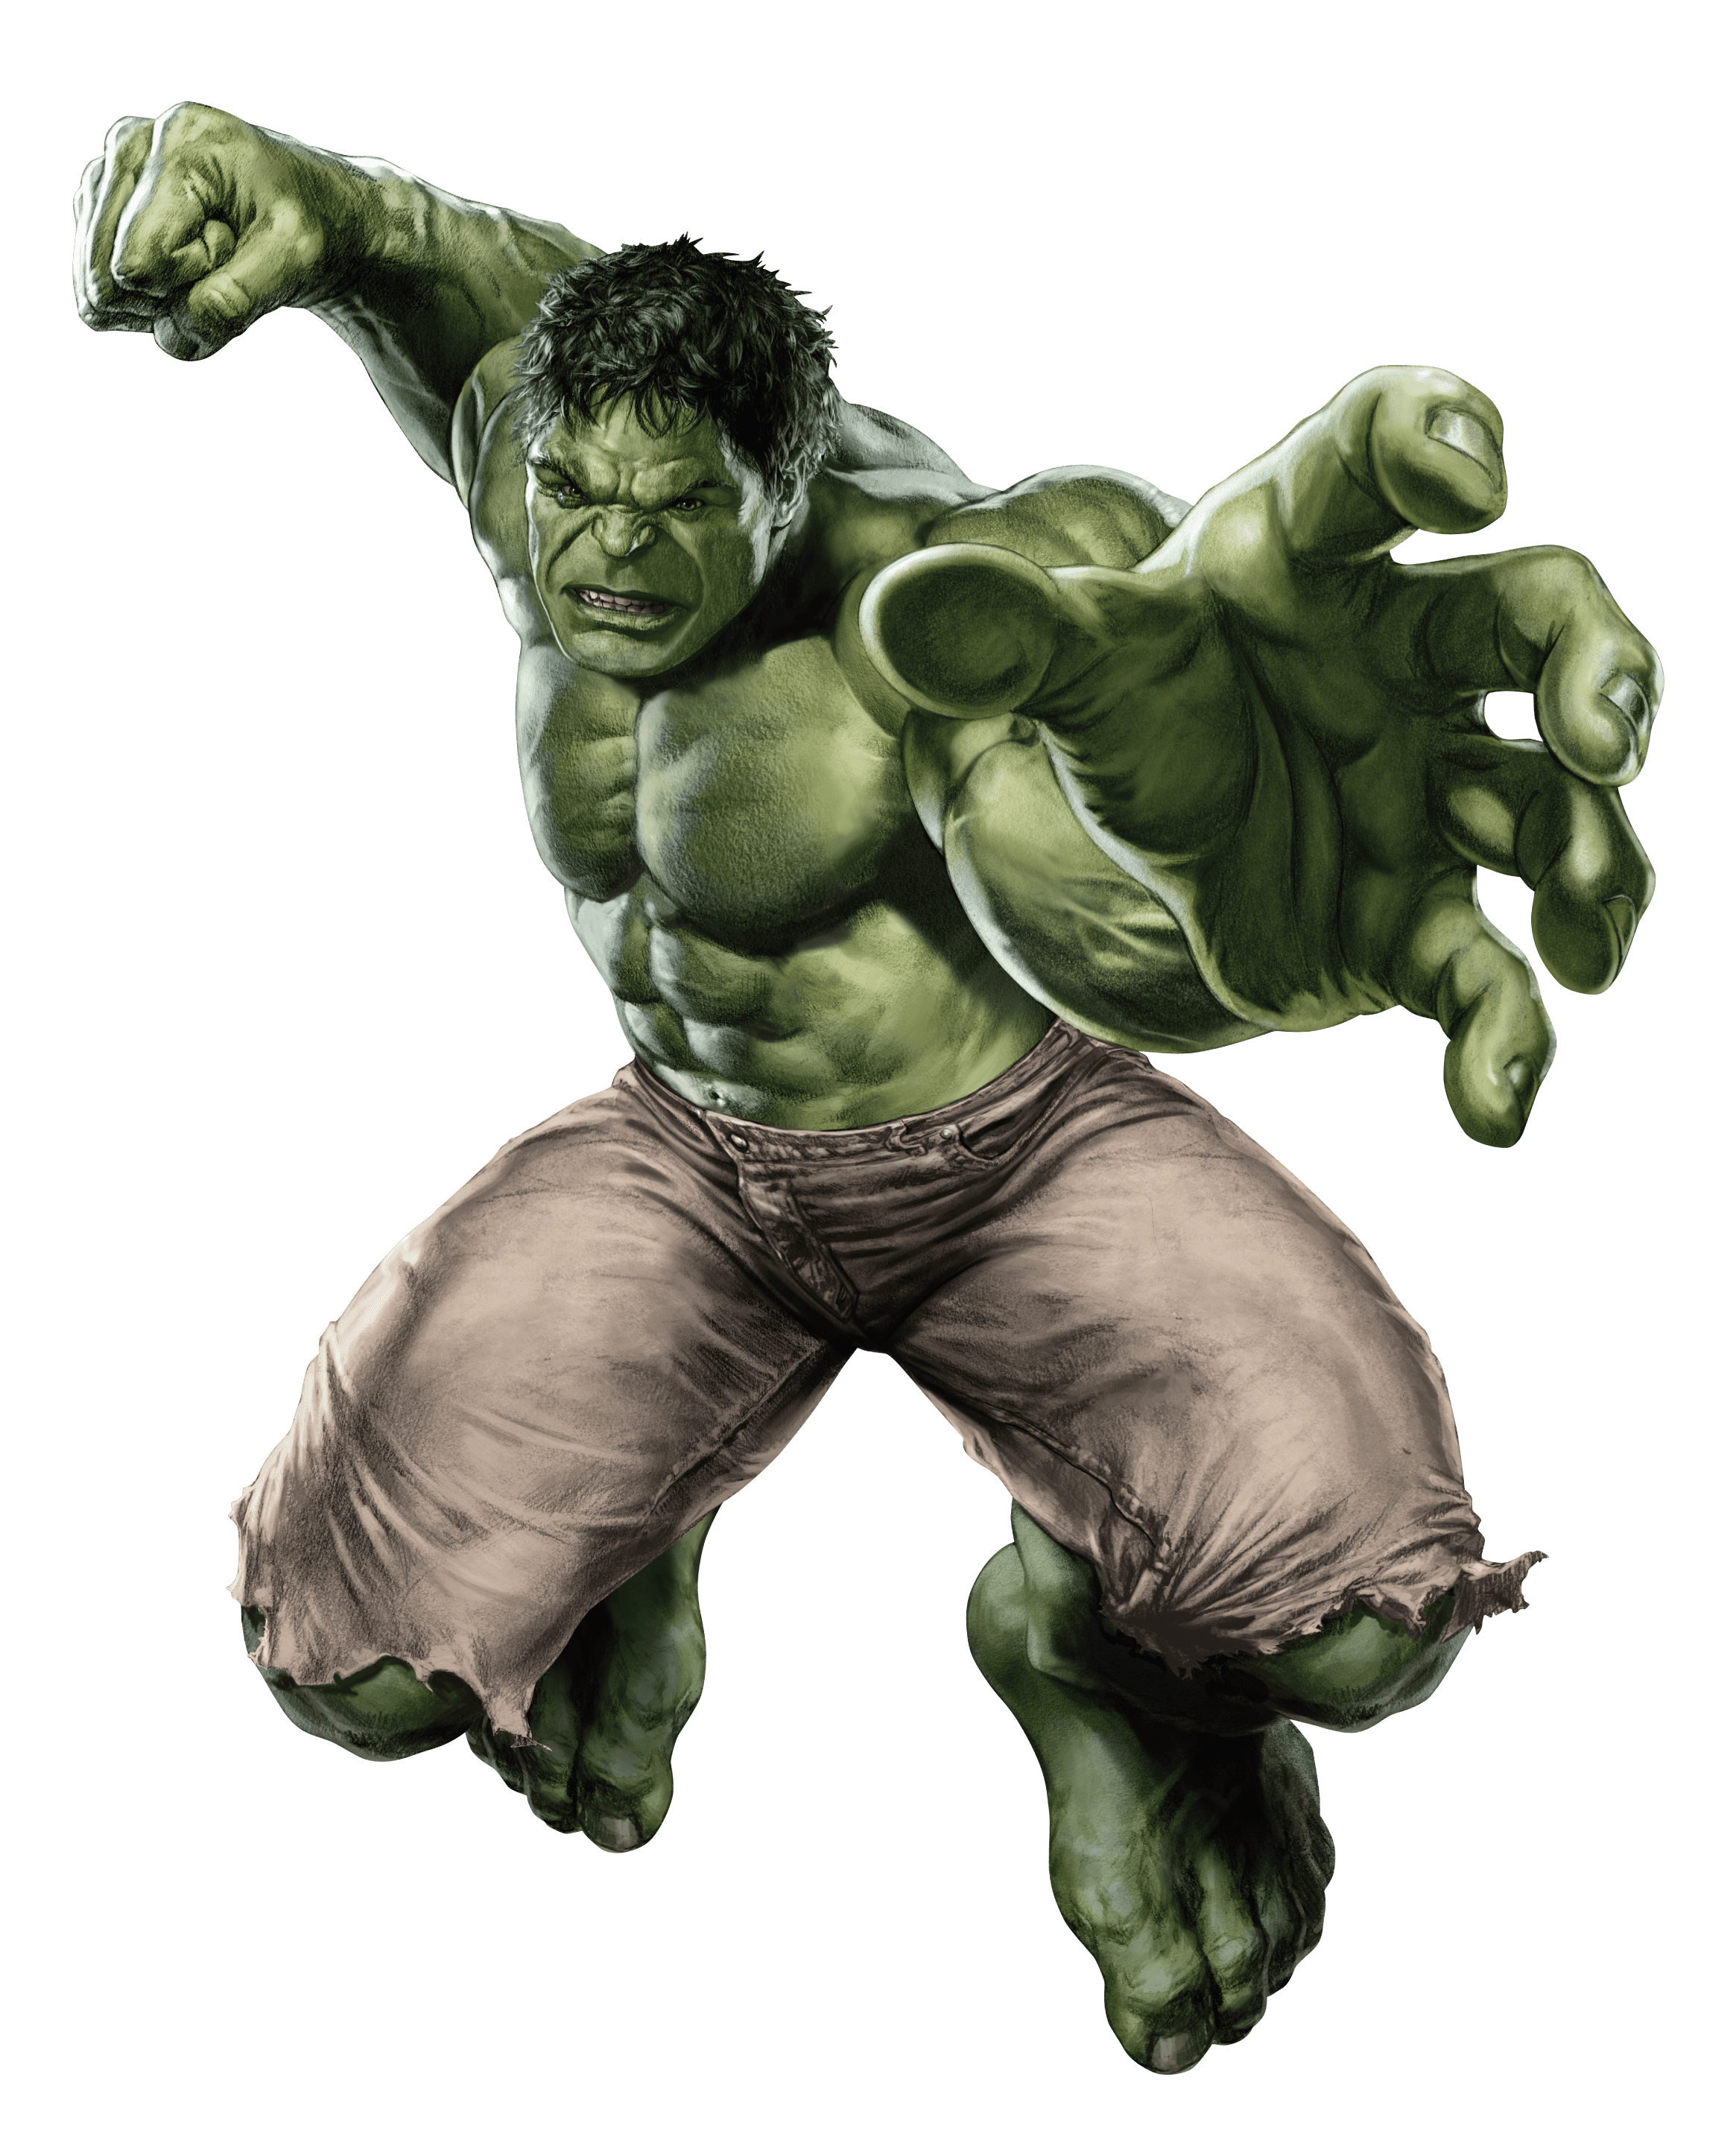 A.R.M.M Secret Files: The Incredible Hulk Vs The